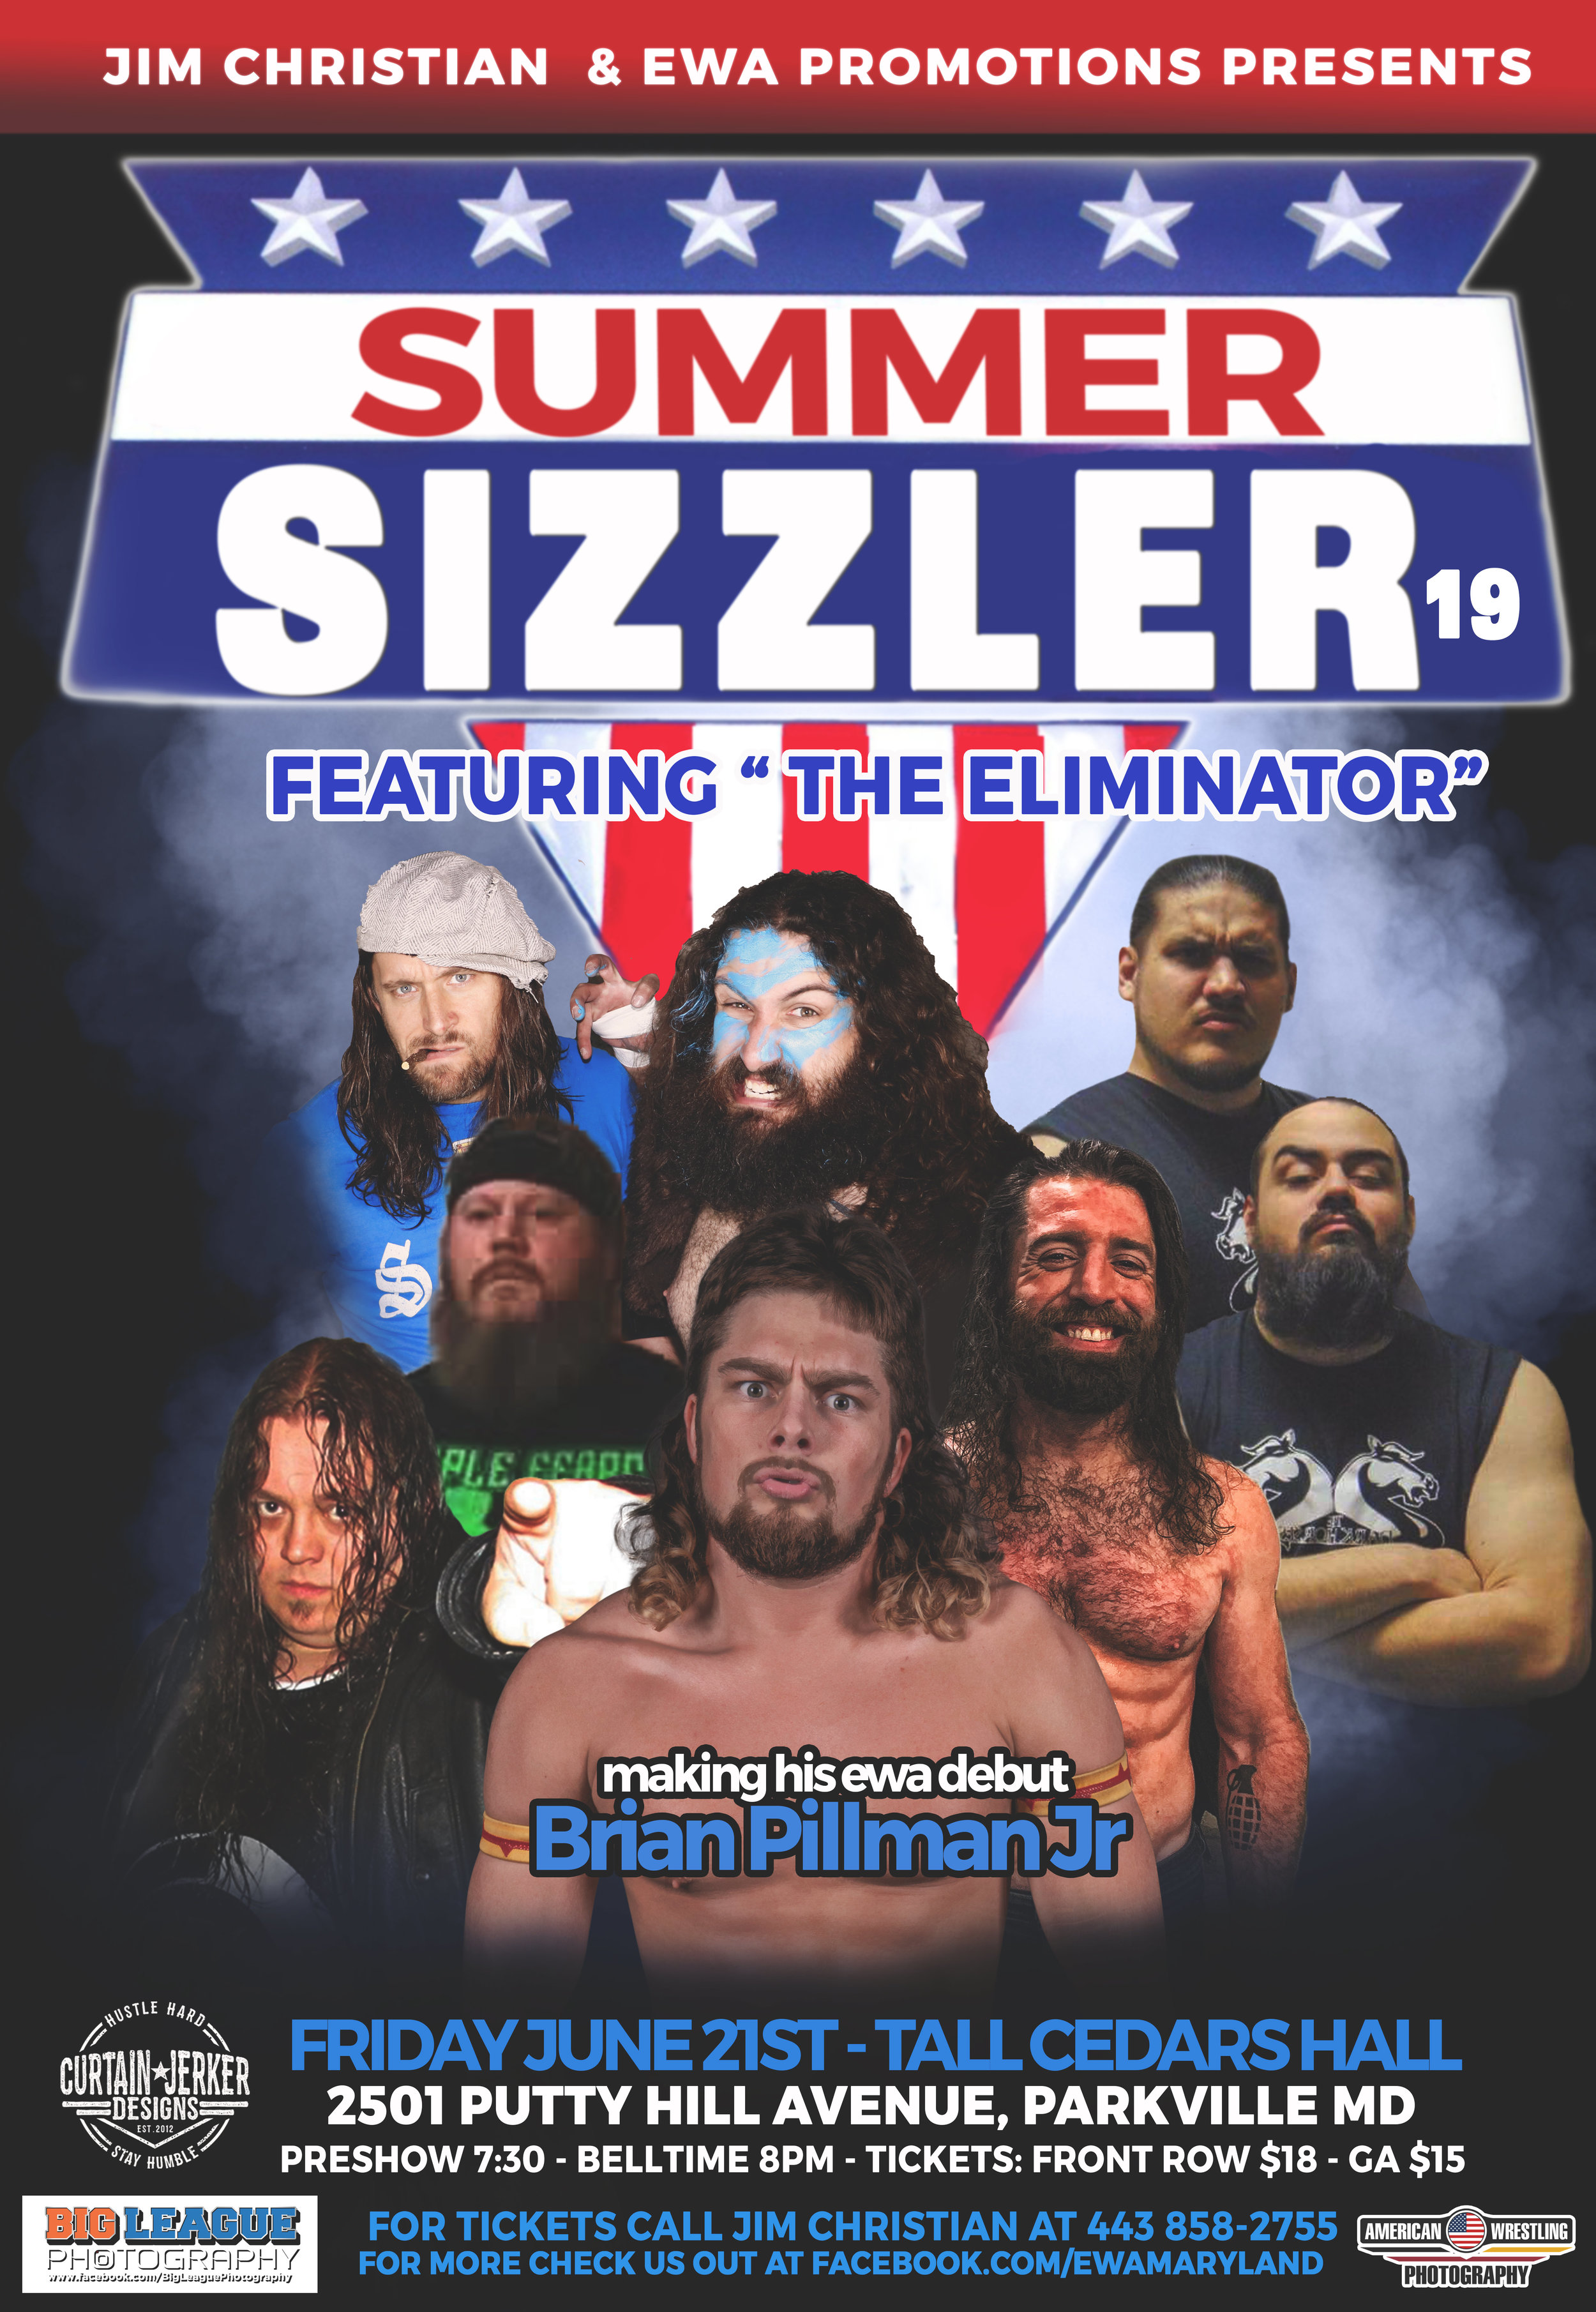 Official event poster for EWA Summer Sizzler 2019